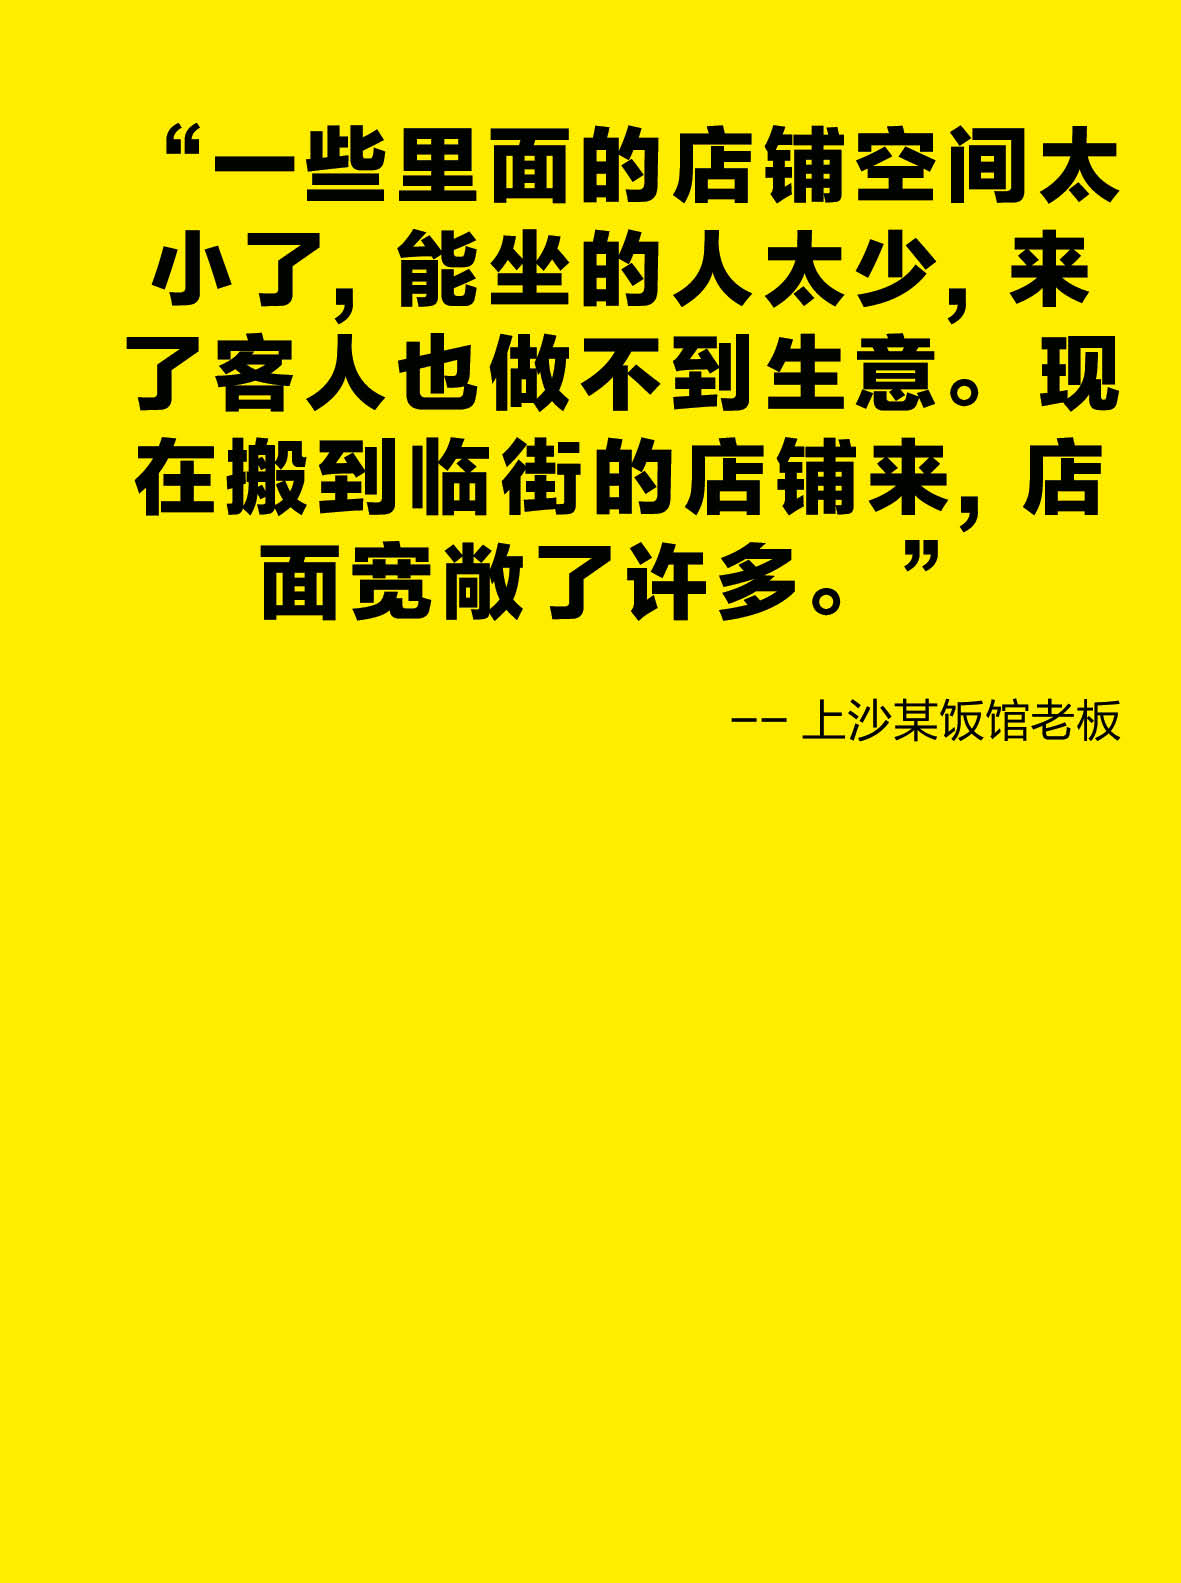 20180106_Shangsha Quotes test036.jpg